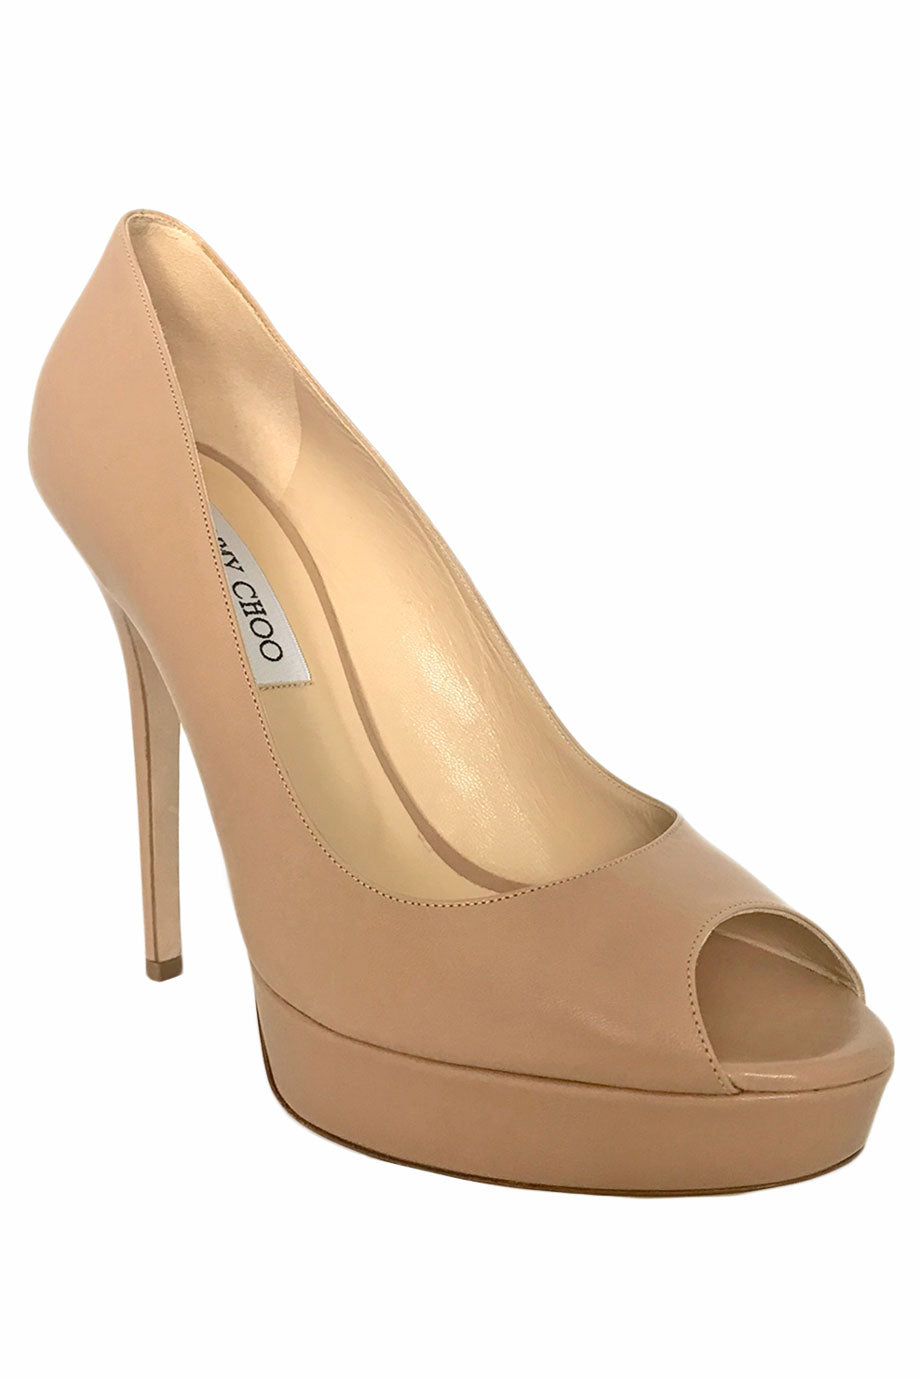 Jimmy Choo Nude Leather Crown Peep Toe Platform Pumps / Sz 39-Style Therapy